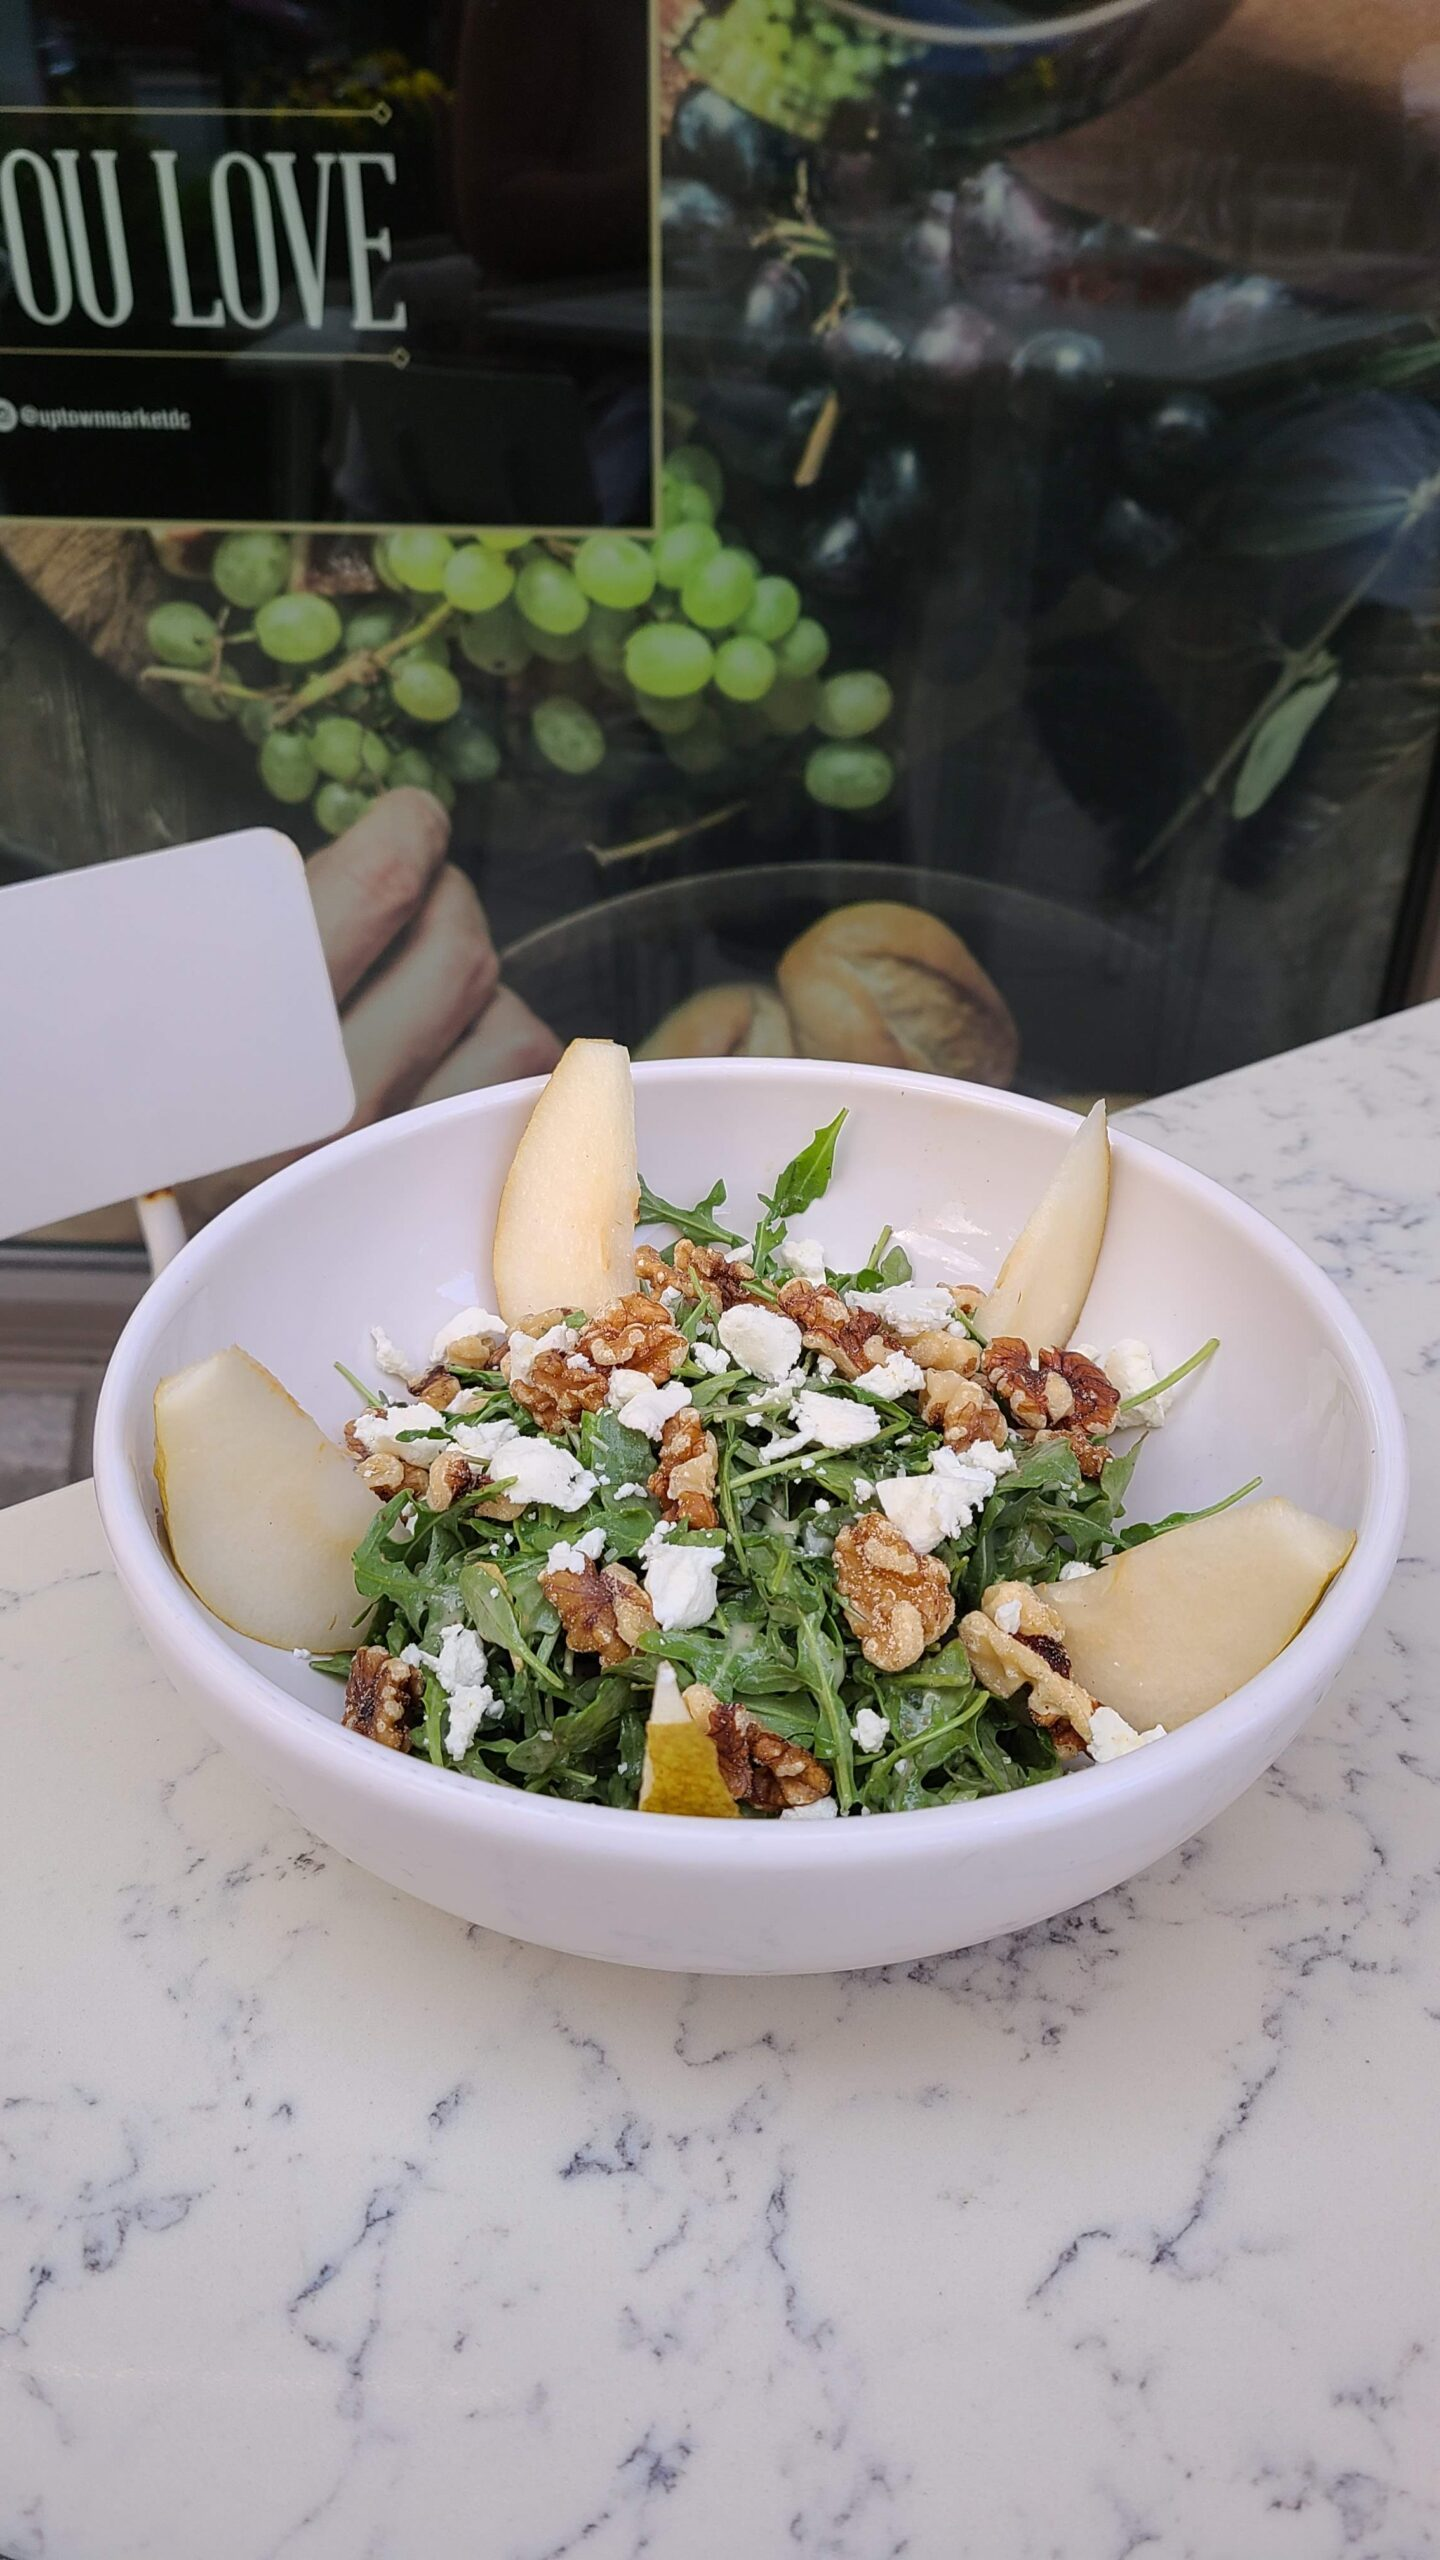 Salad with pears, walnuts, and goat cheese